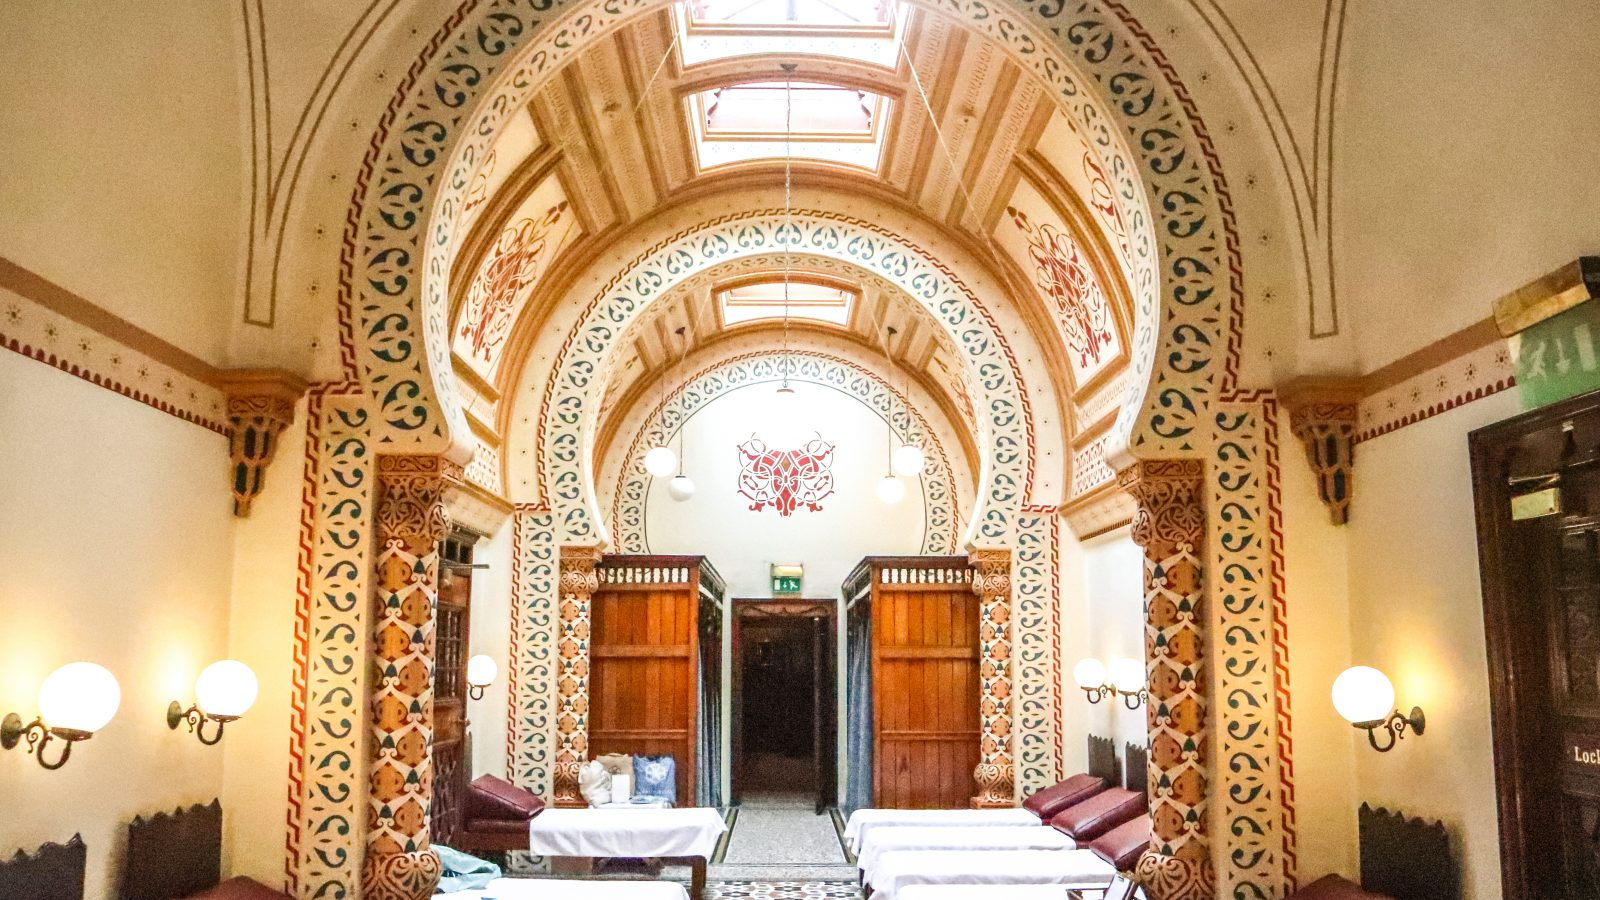 The exquisite Royal Turkish Baths in the UK Spa Town of Harrogate in Yorkshire are the only completely working Victorian Turkish Baths in Britain!